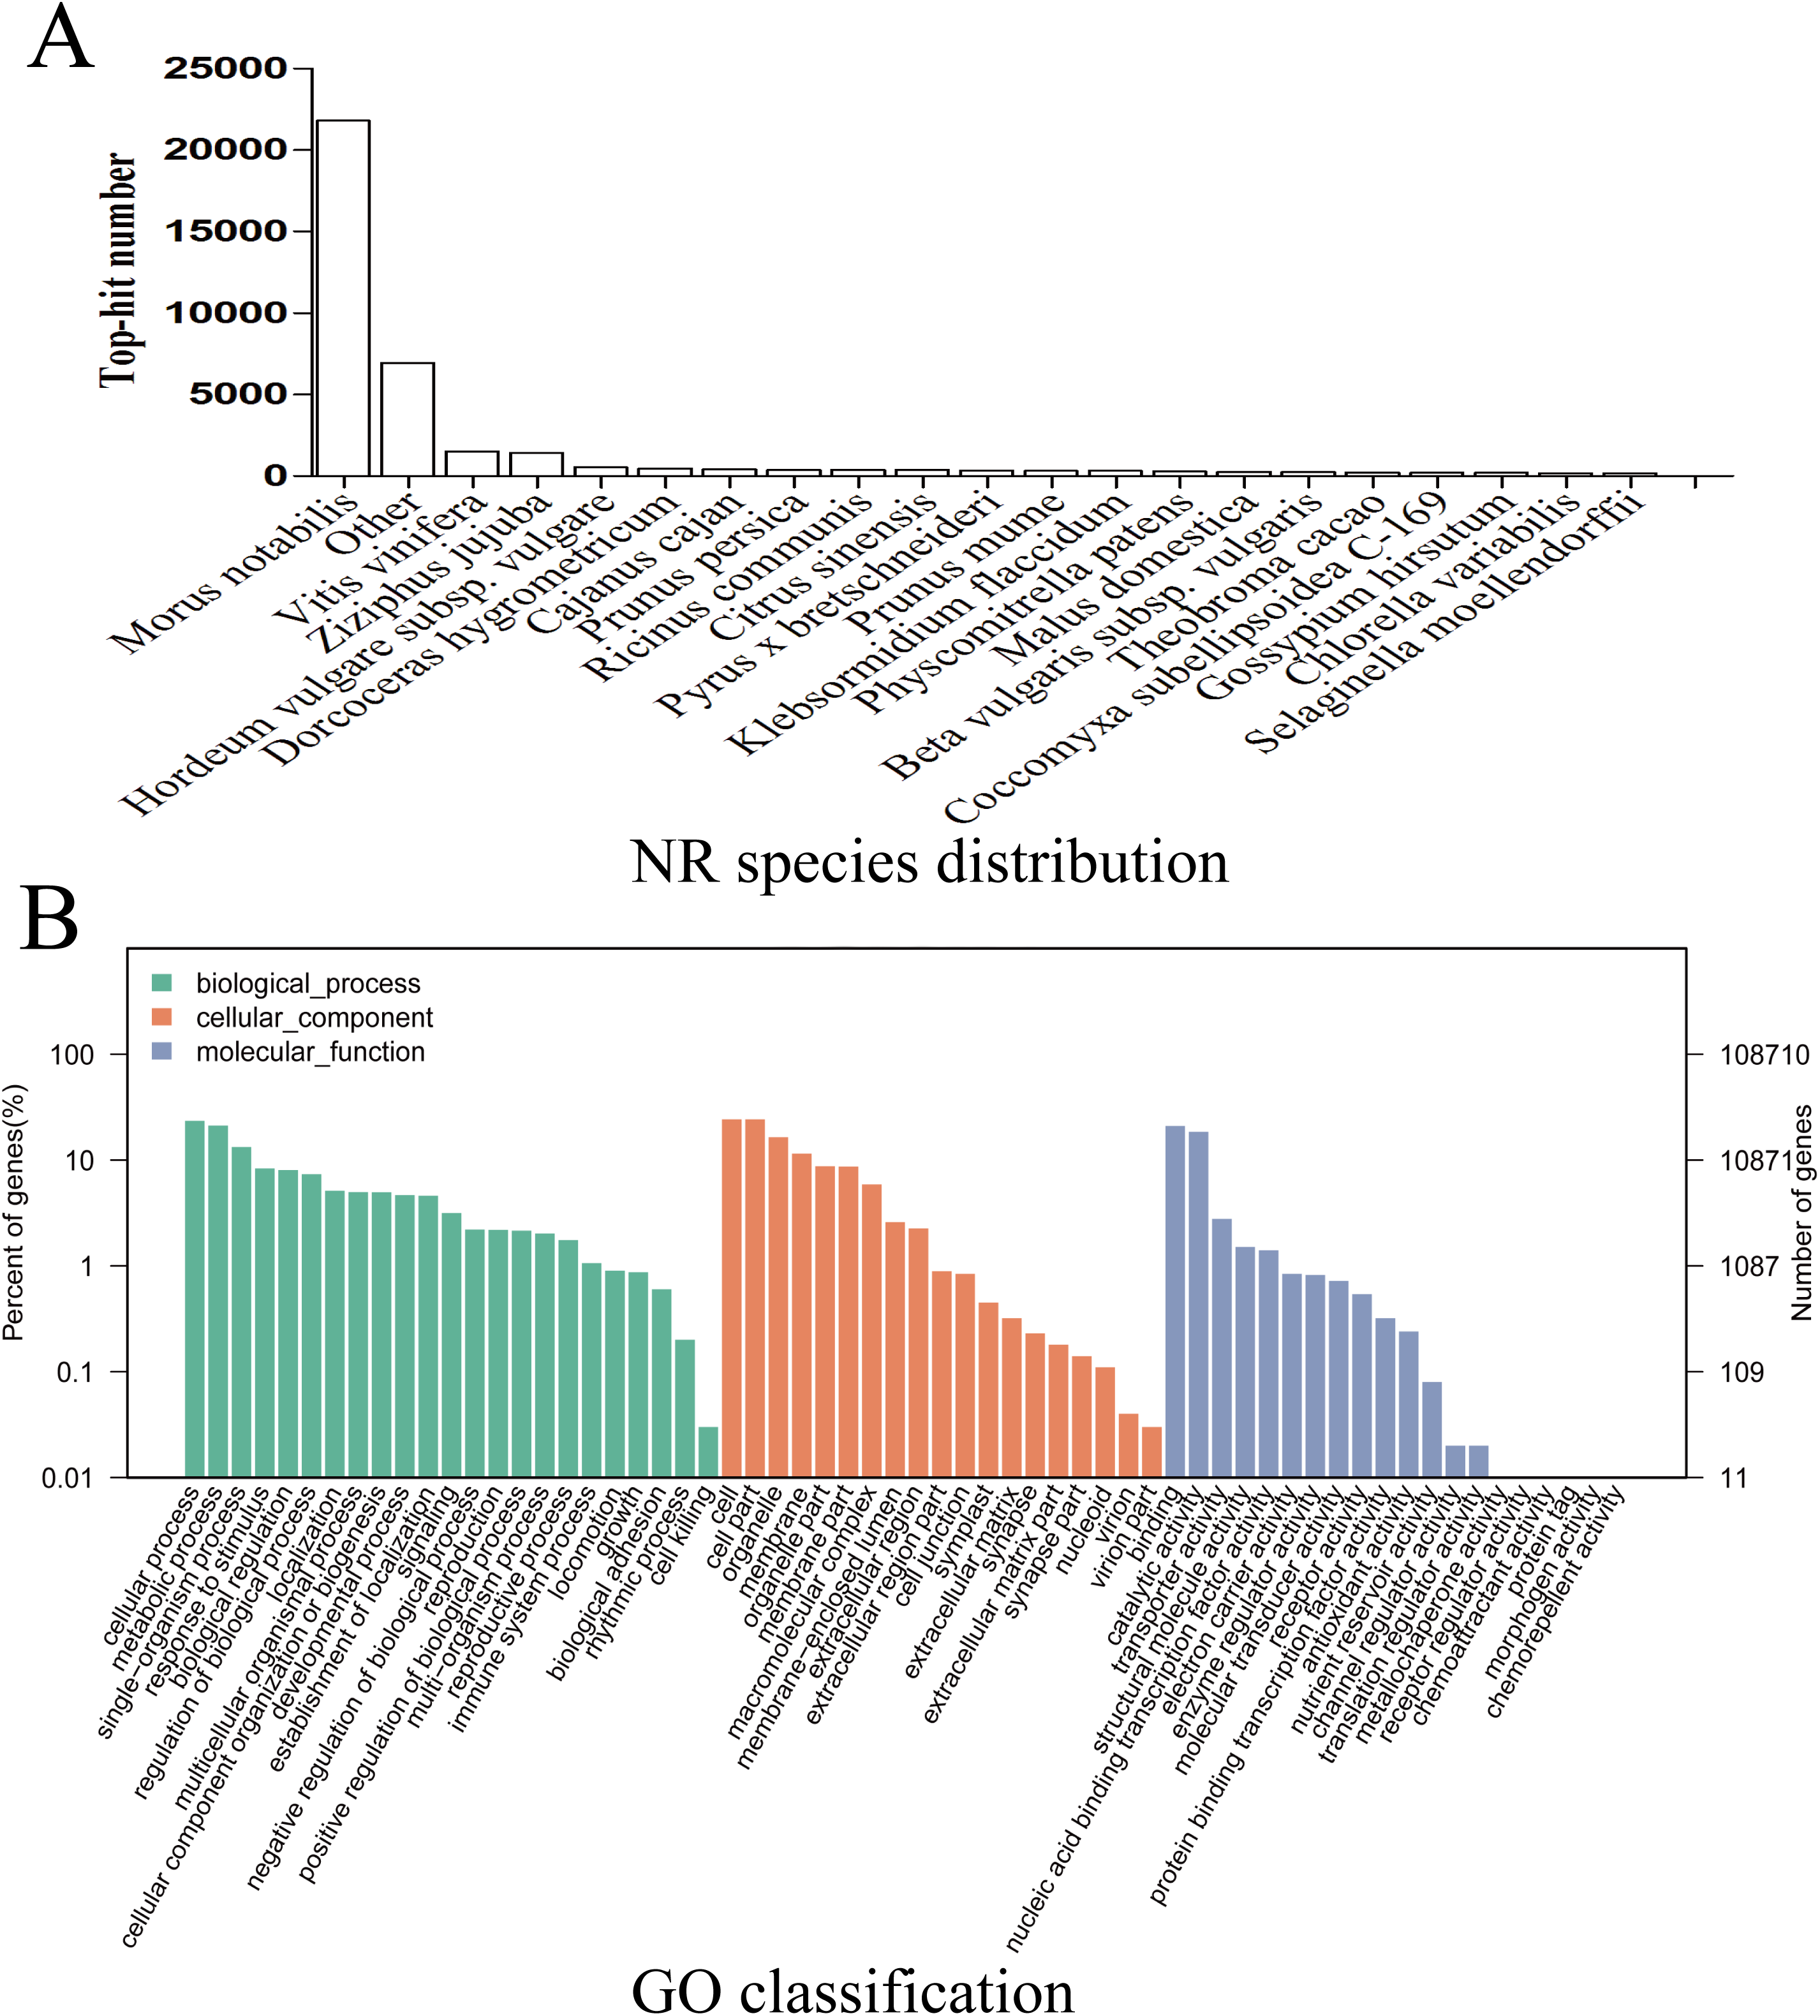 Transcriptome Analysis And Identification Of Key Genes Involved In 1 Annotate The Diagram A Eukaryotic Cell With Functions Download Full Size Image